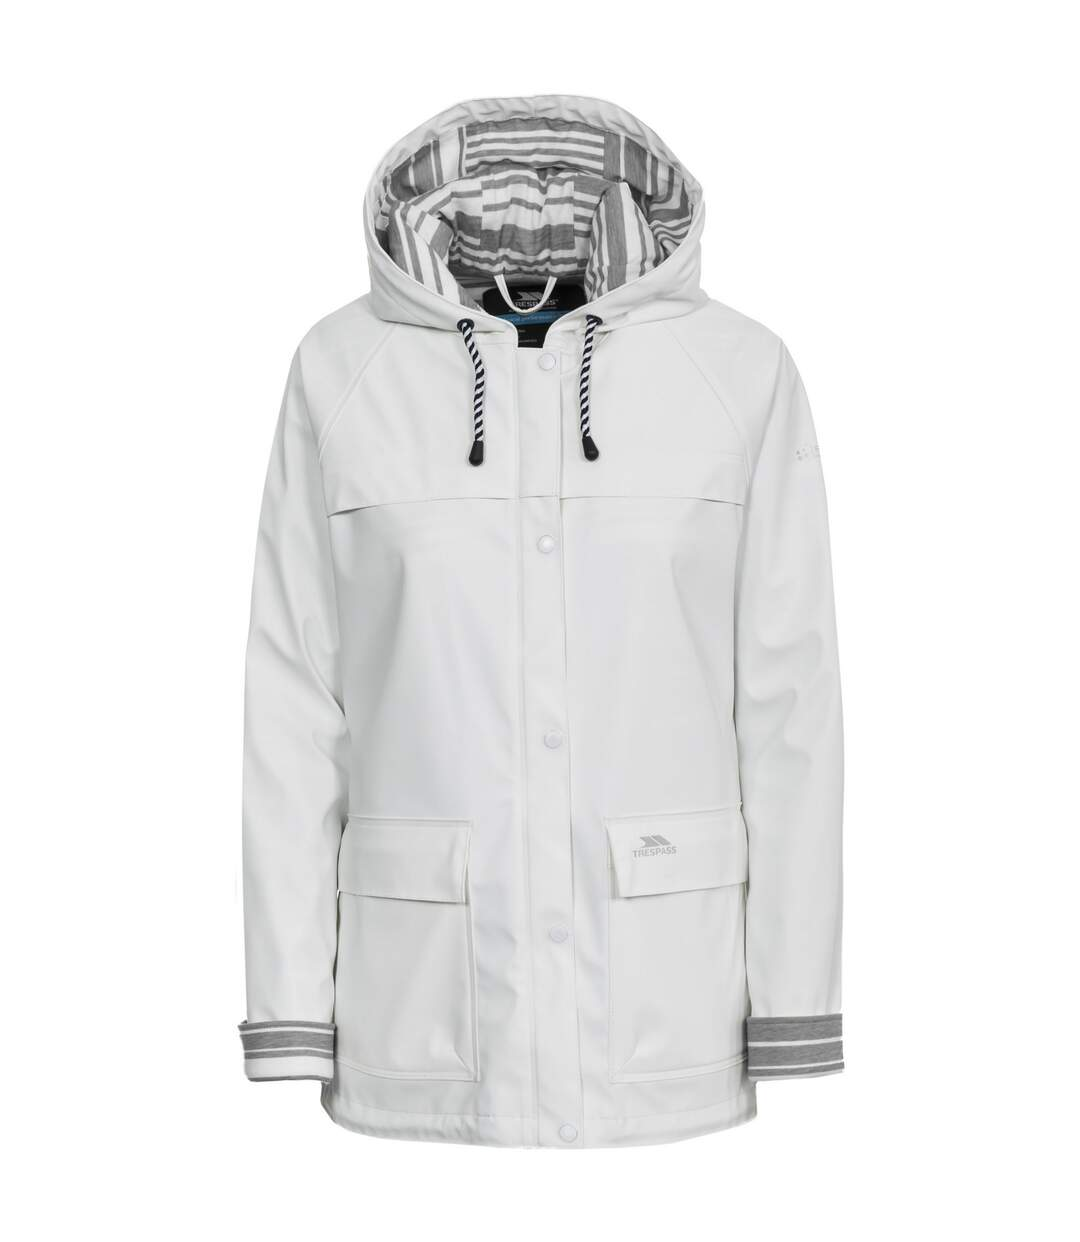 Trespass - Manteau De Ski Imperméable Muddle - Femme (Blanc) - UTTP3991